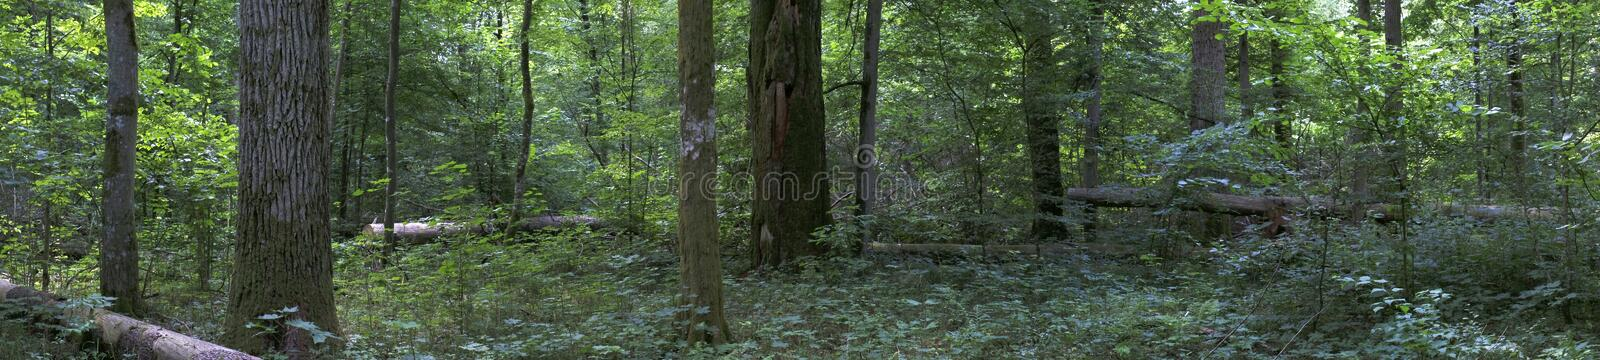 Deciduous forest landscape with old oak trees. In summer panorama, Bialowieza forest, Poland, Europe stock photography